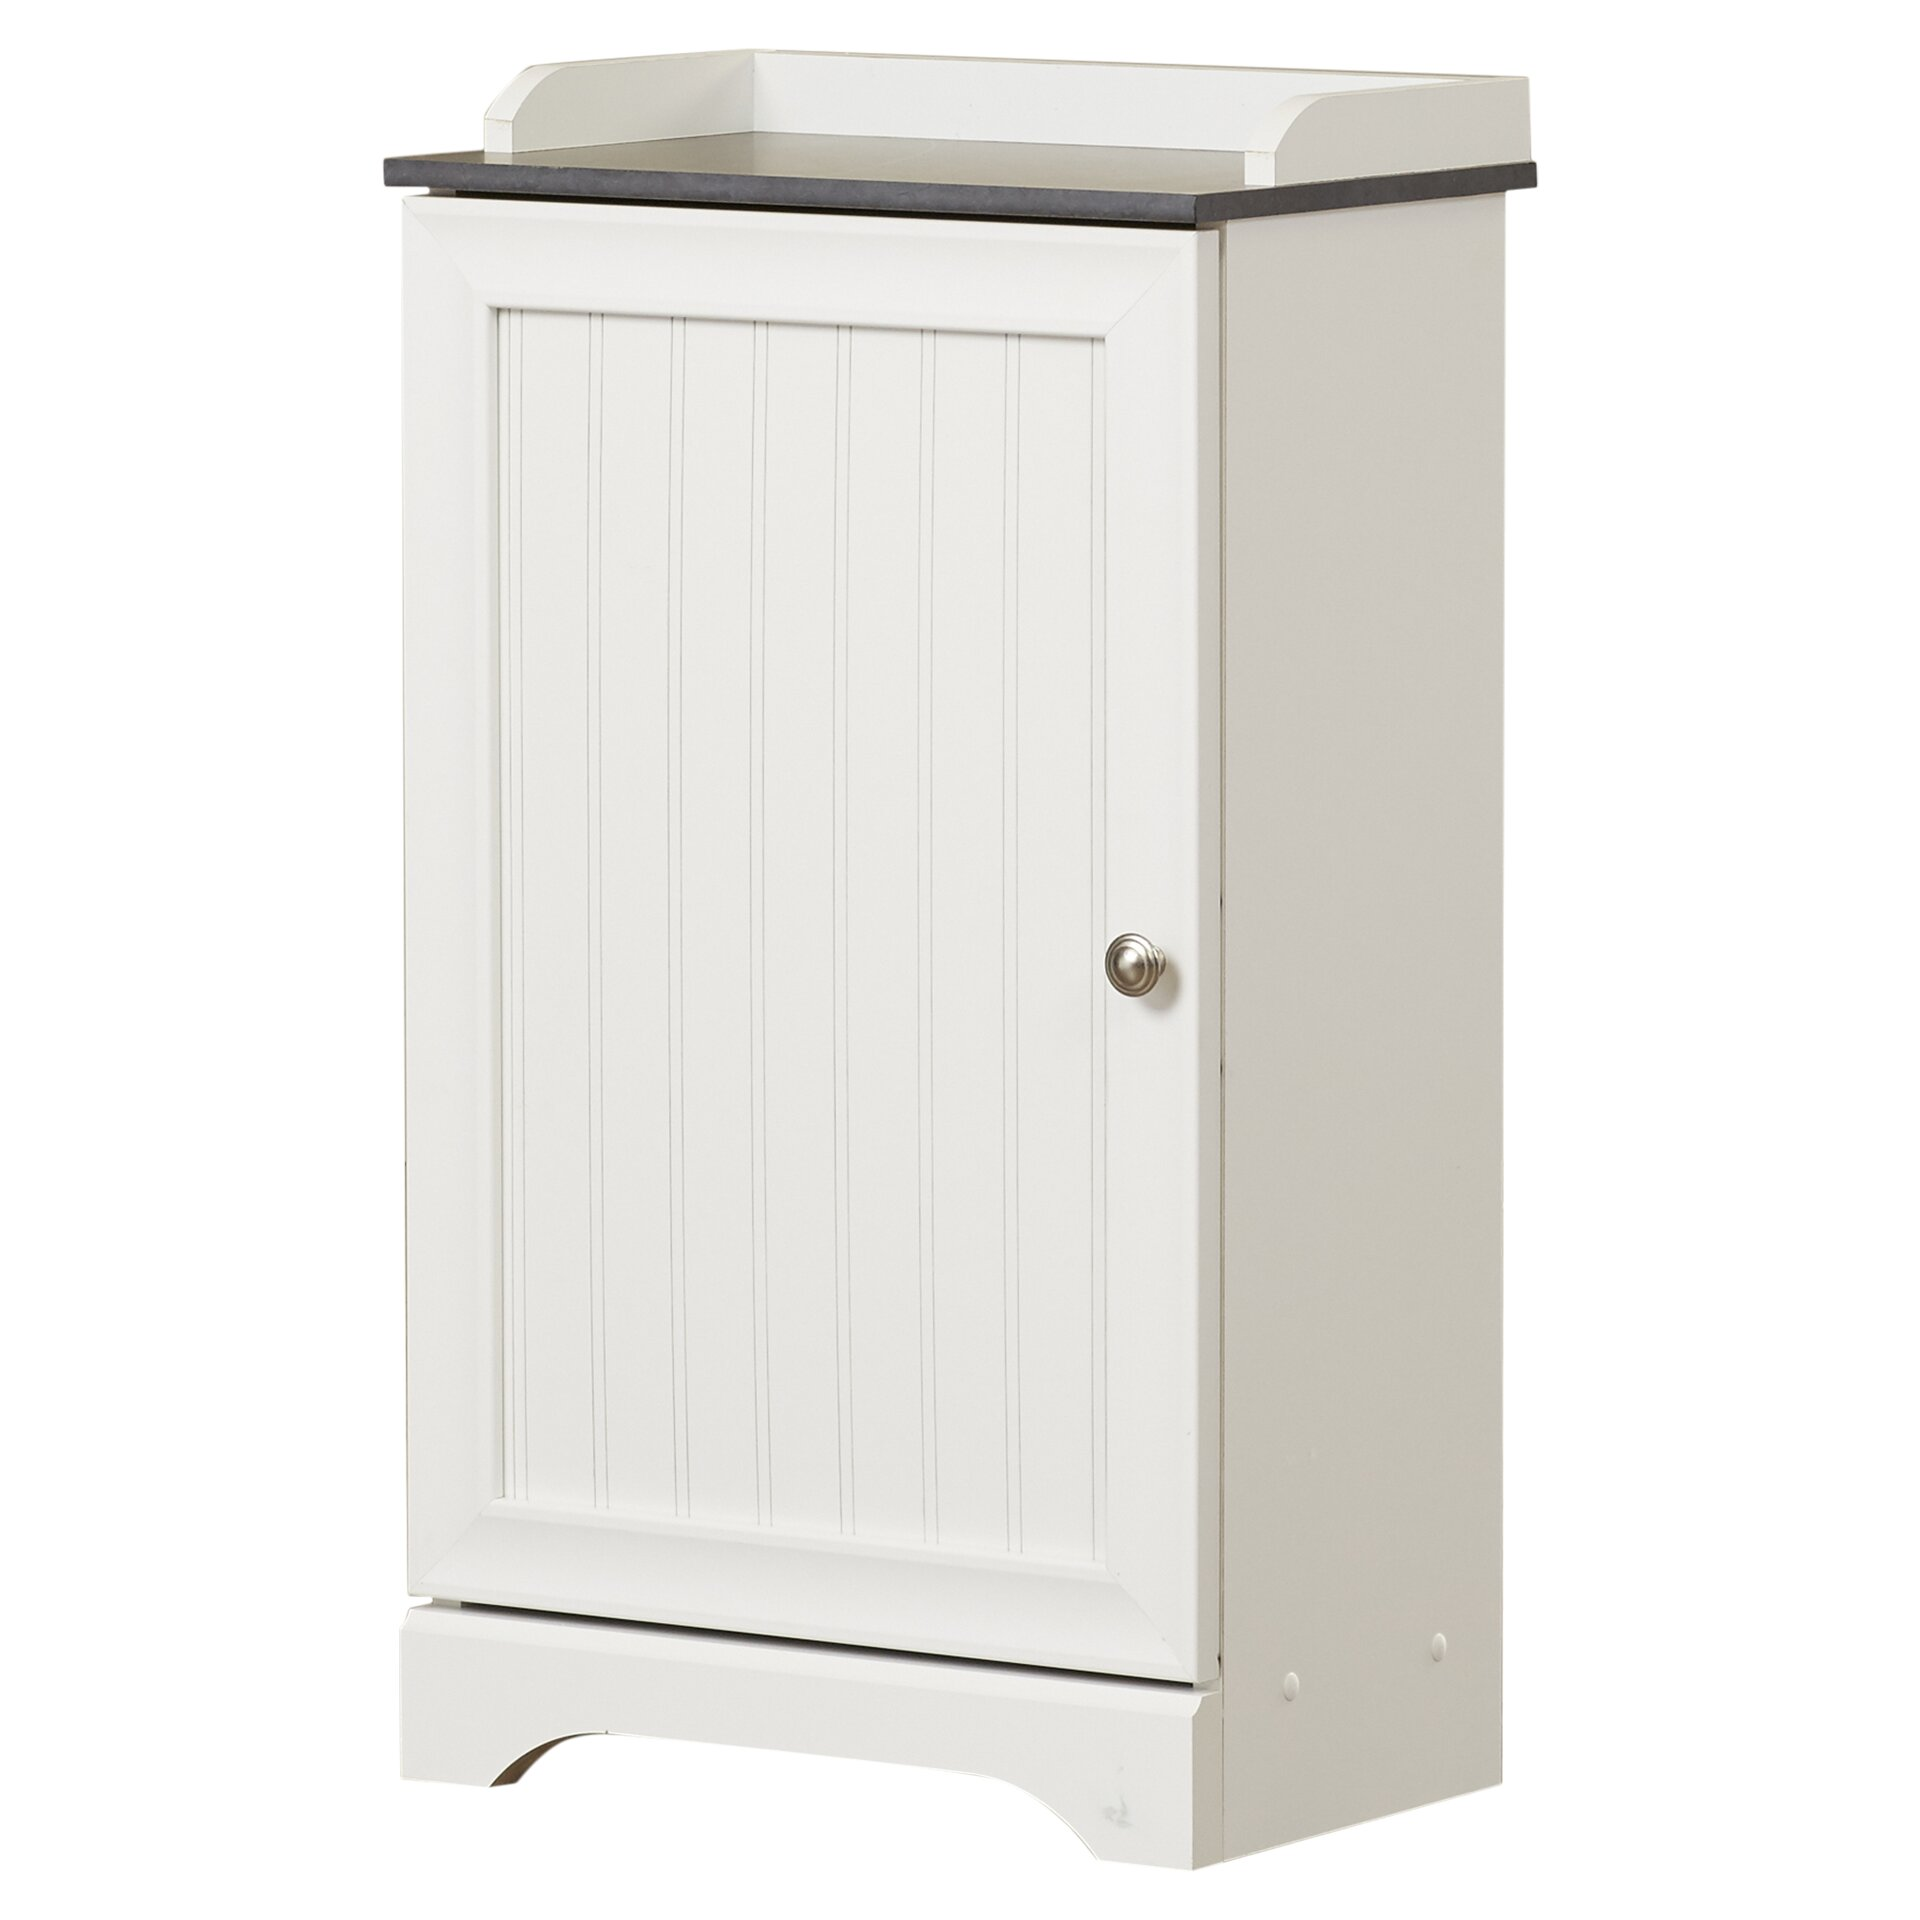 Beachcrest home gulf free standing cabinet reviews for Bathroom cabinets reviews